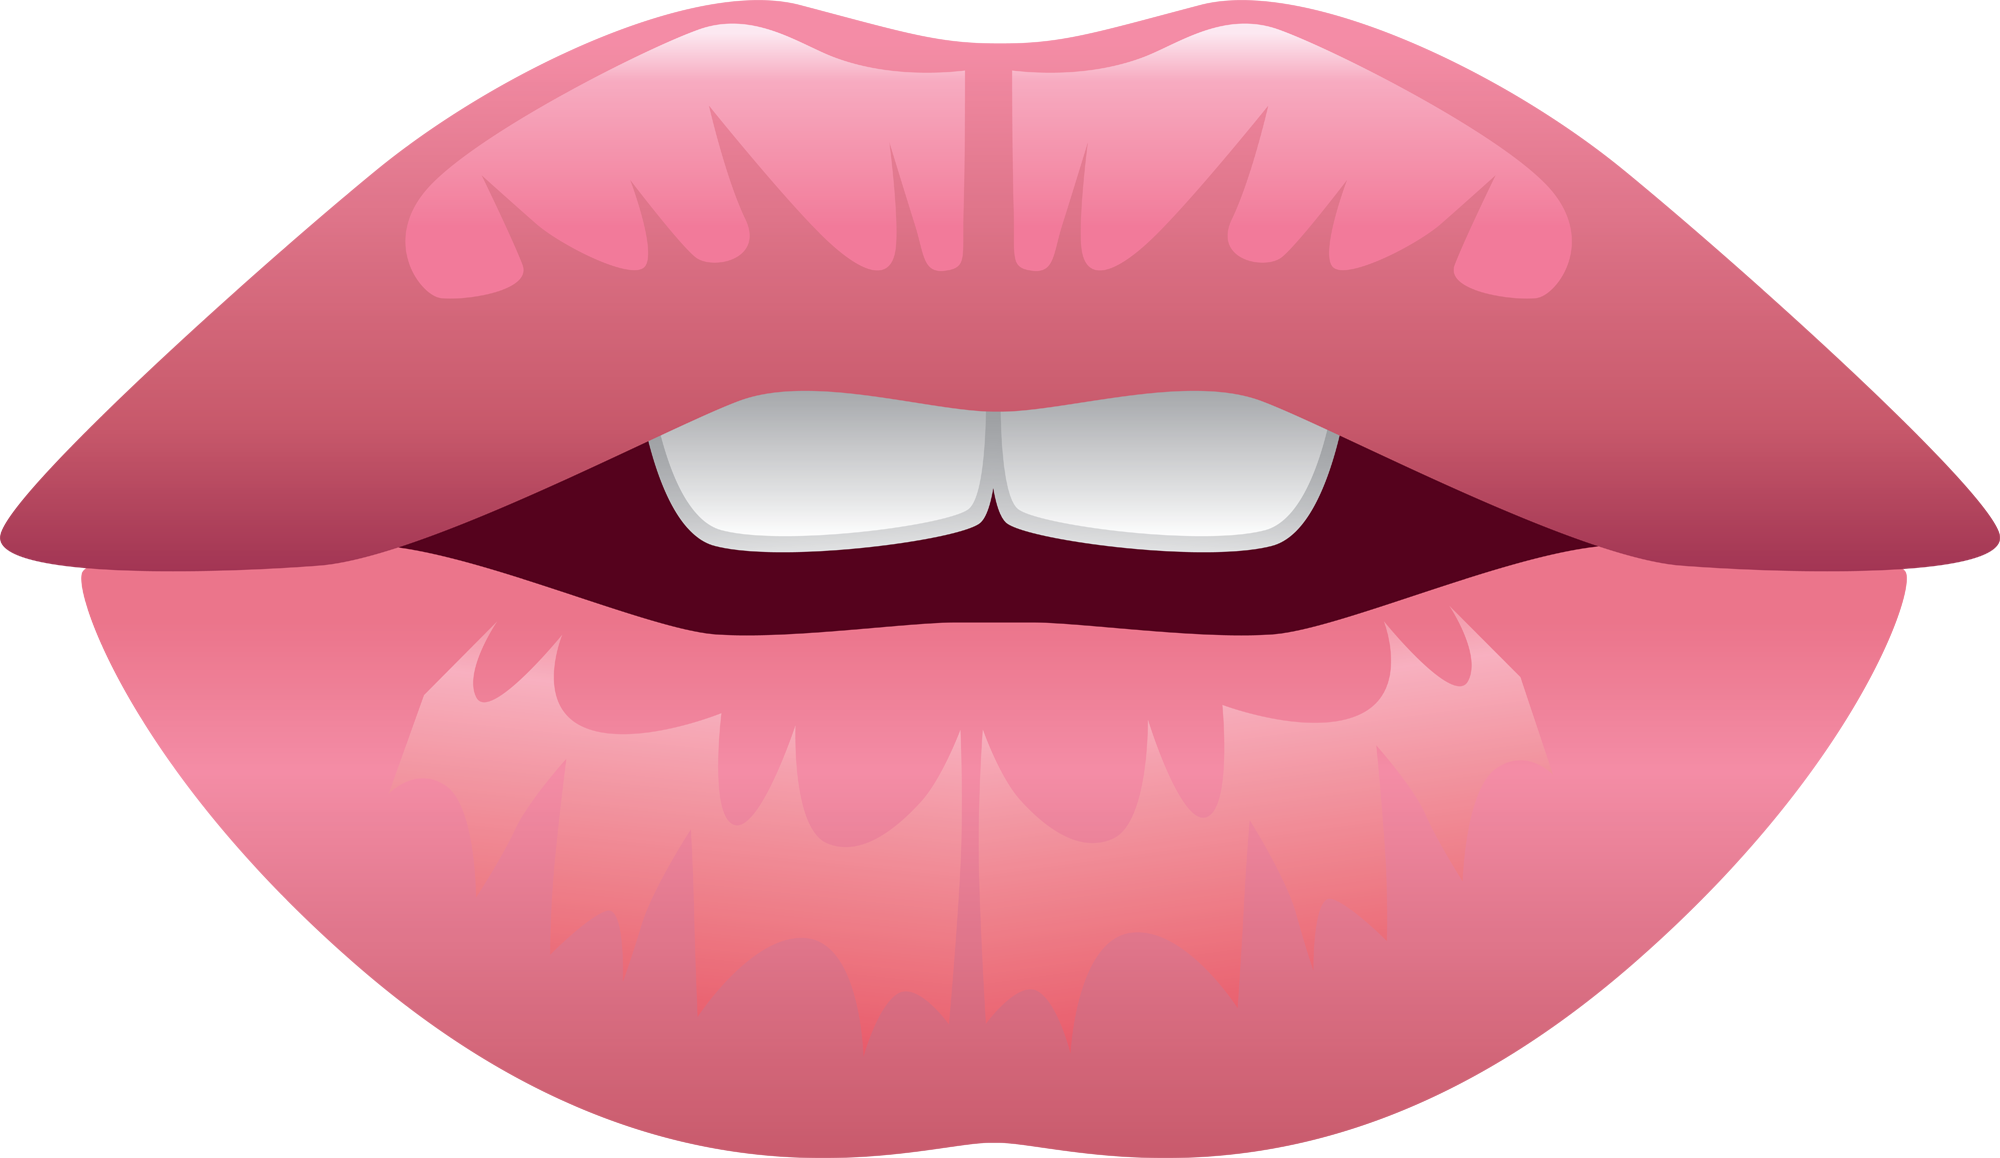 Anime lips png. Flowers smell good by